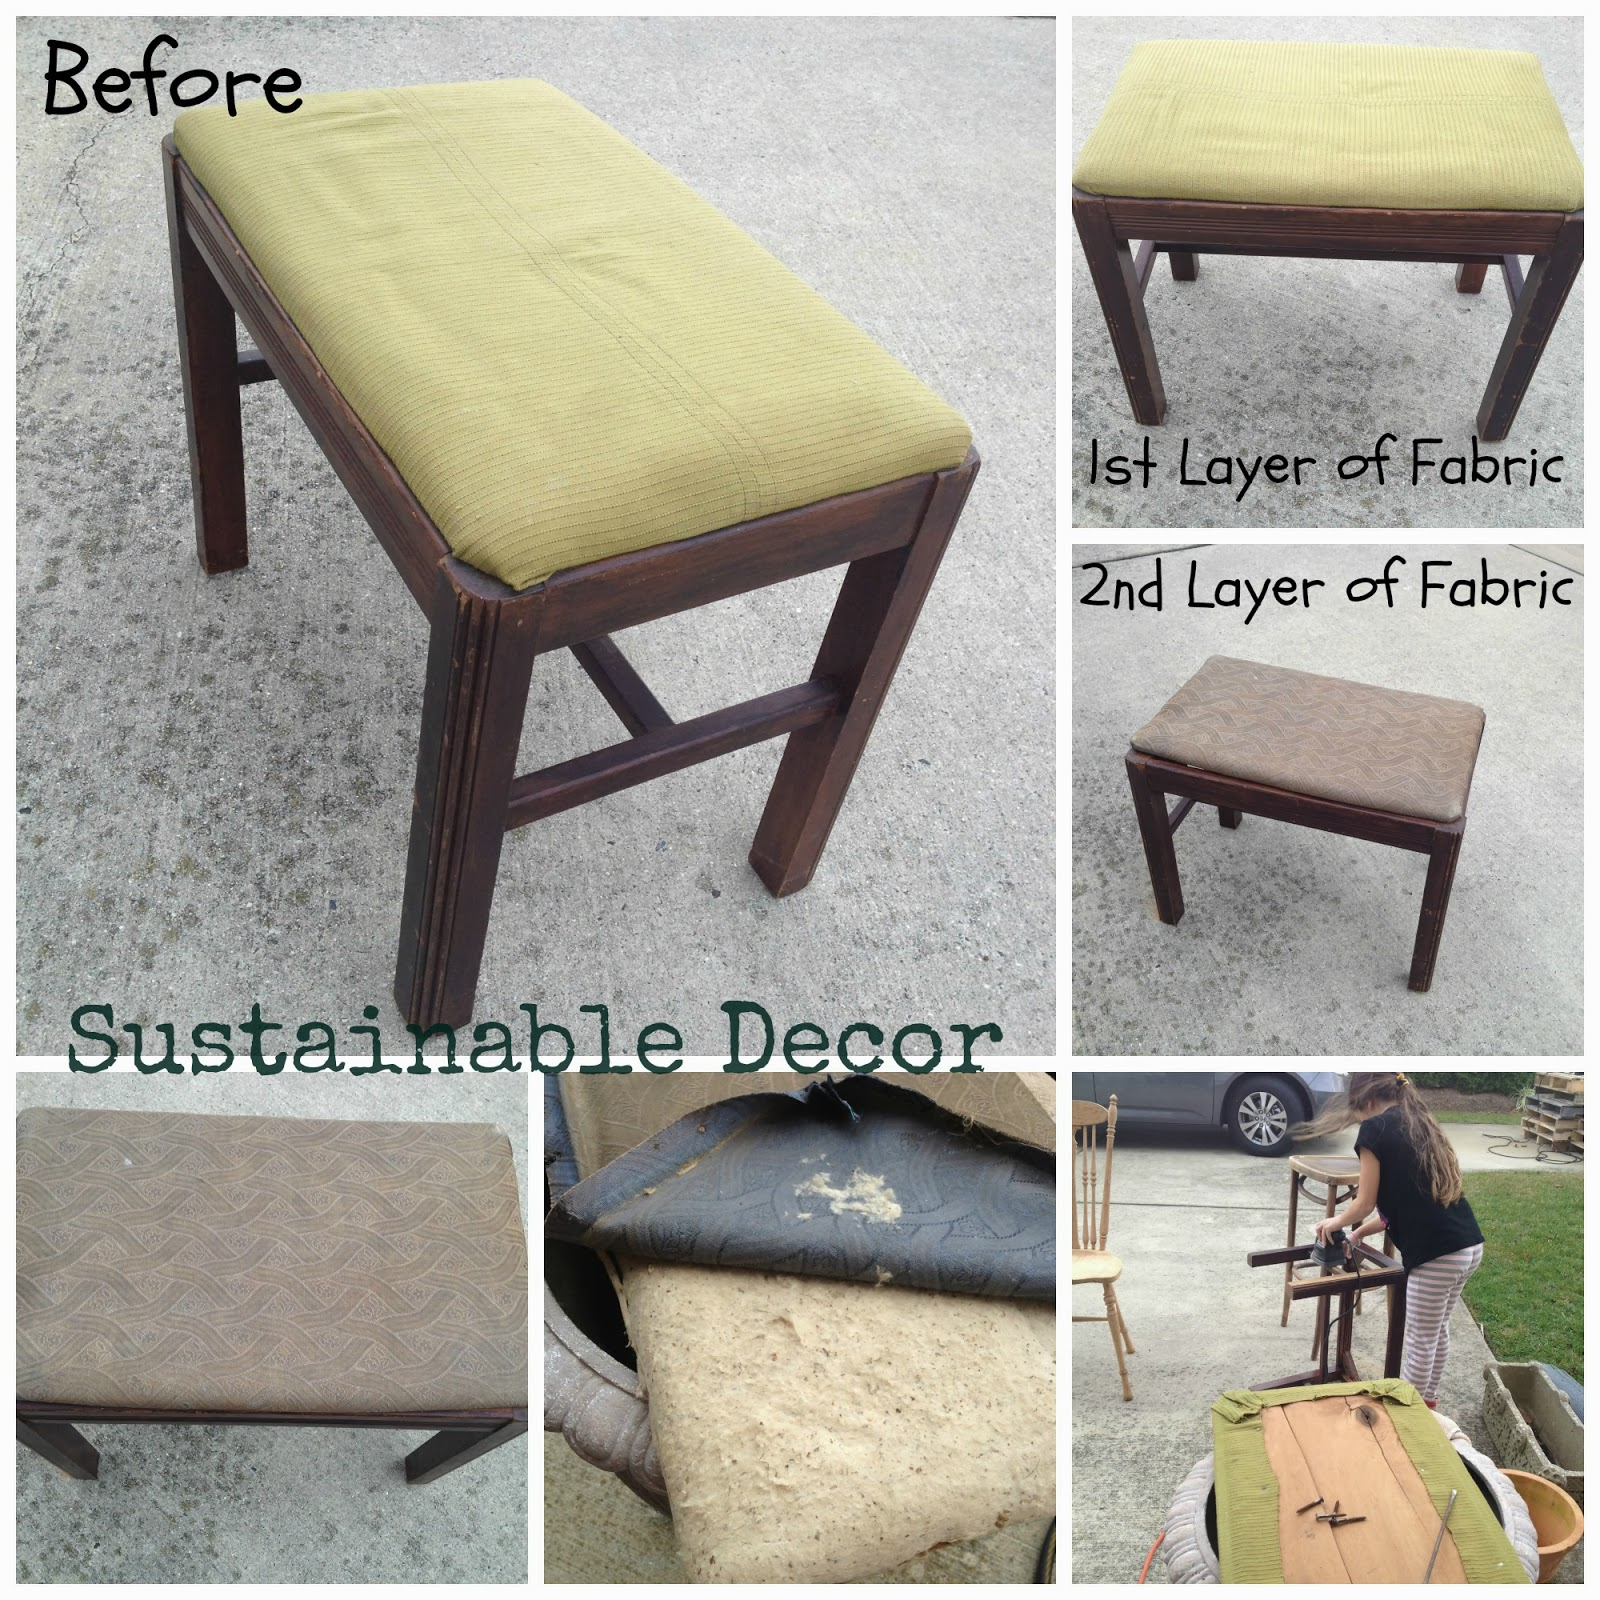 Sustainable Decor Upcycled Bench Chalk Paint Diy